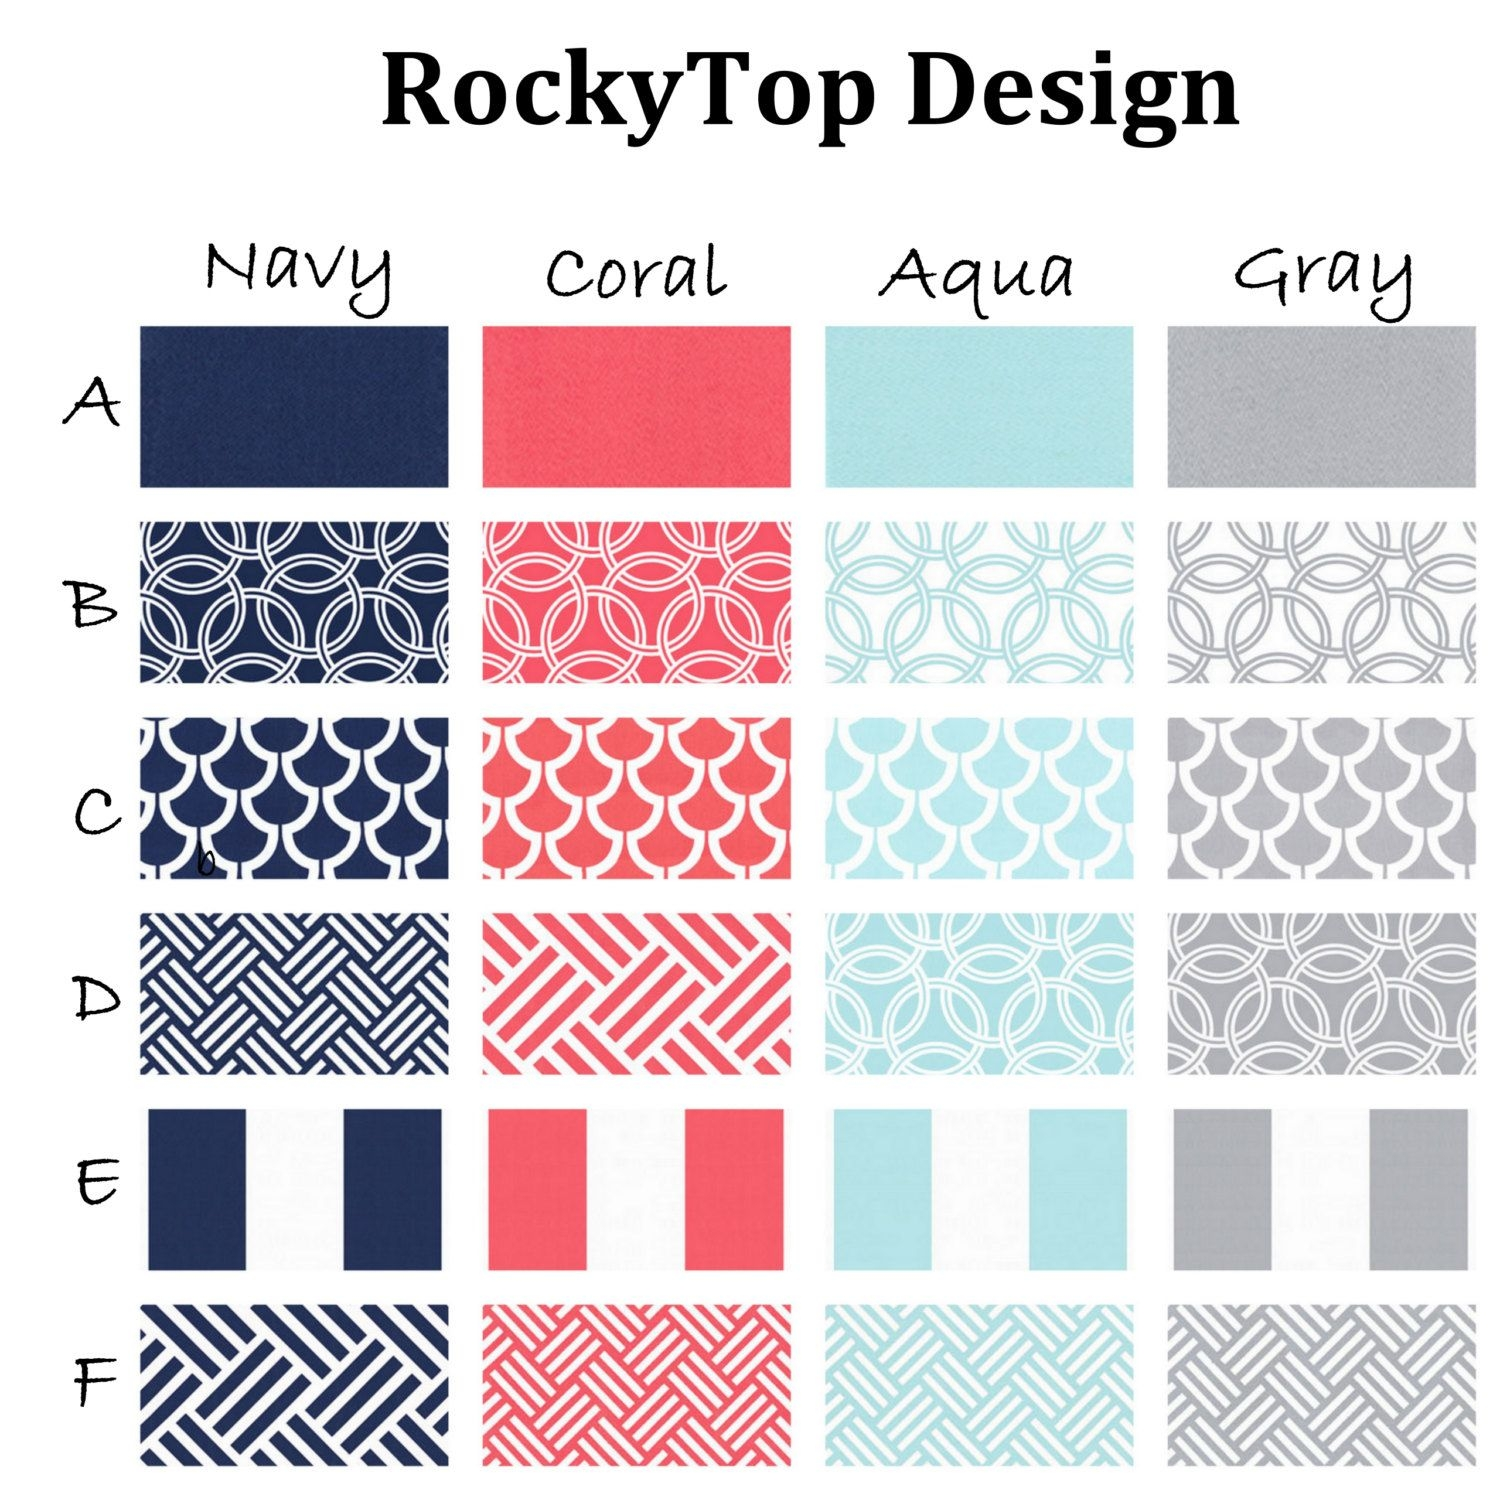 Dorm room colors and patterns  Living room color schemes